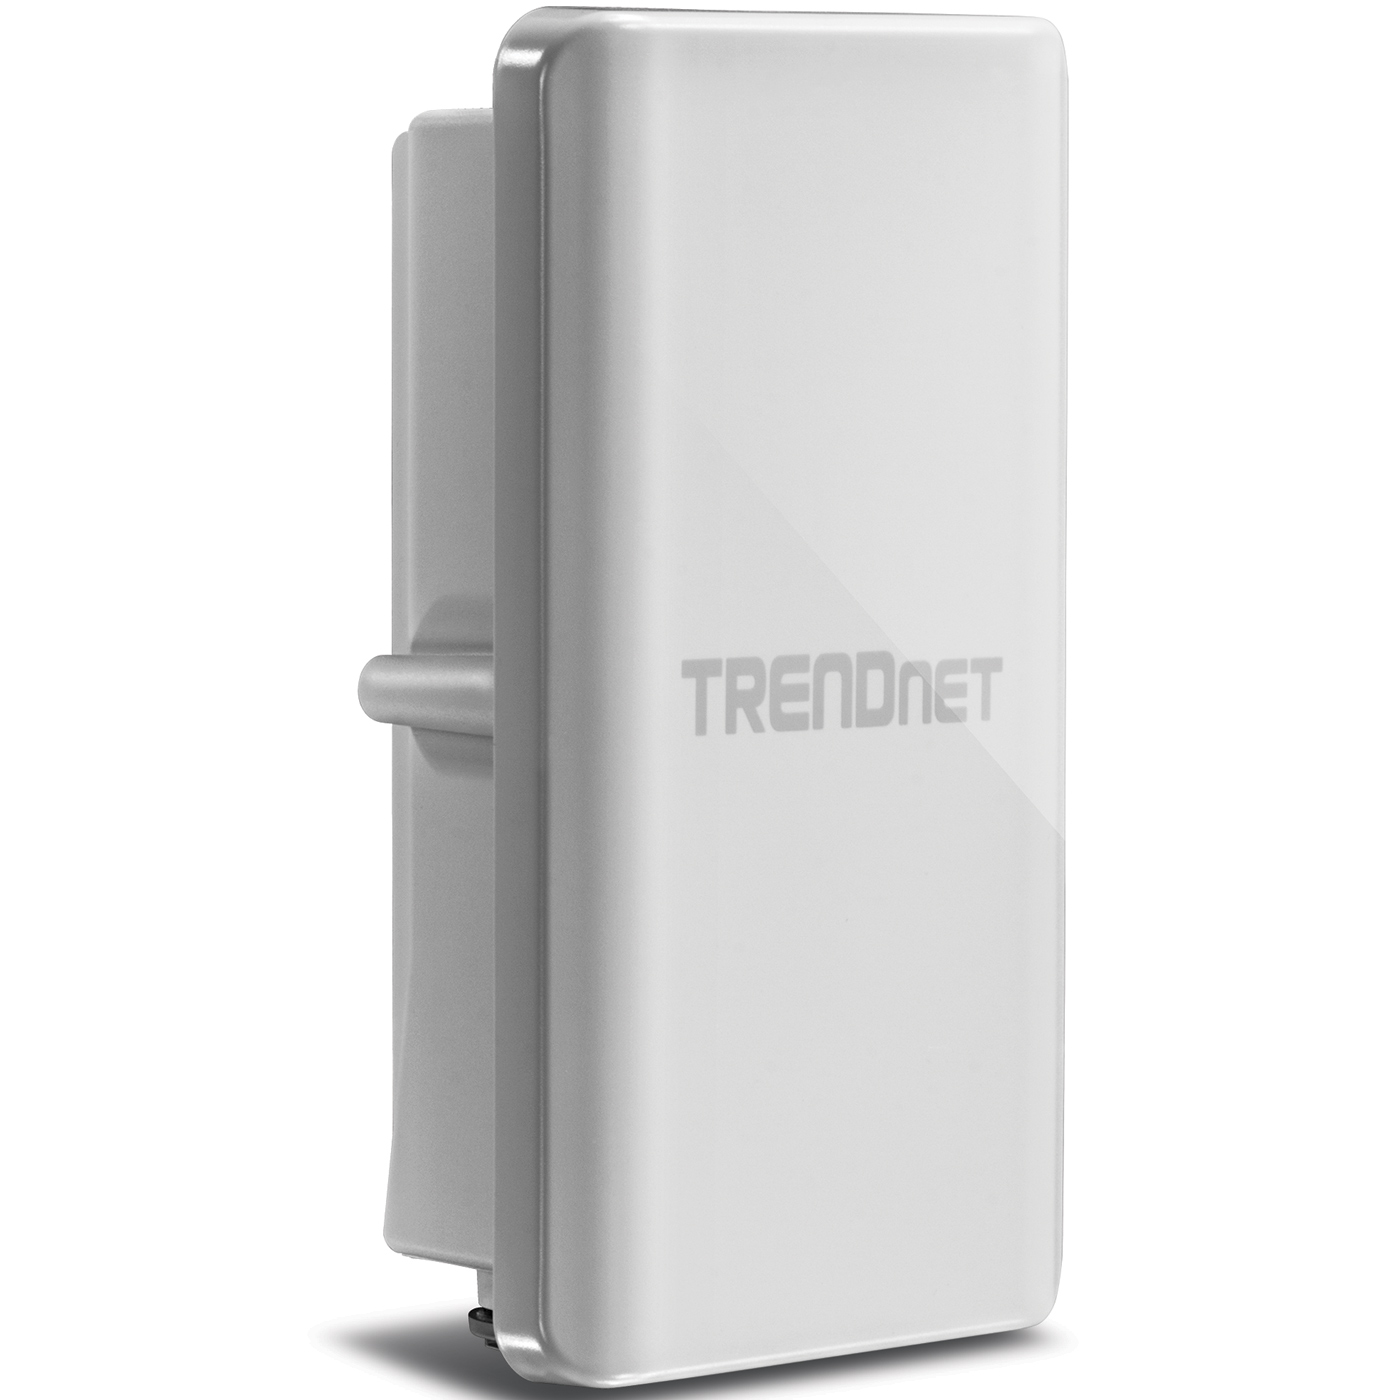 Trendnet tew 738apbo point d 39 acc s wifi trendnet sur for Repeteur wifi exterieur